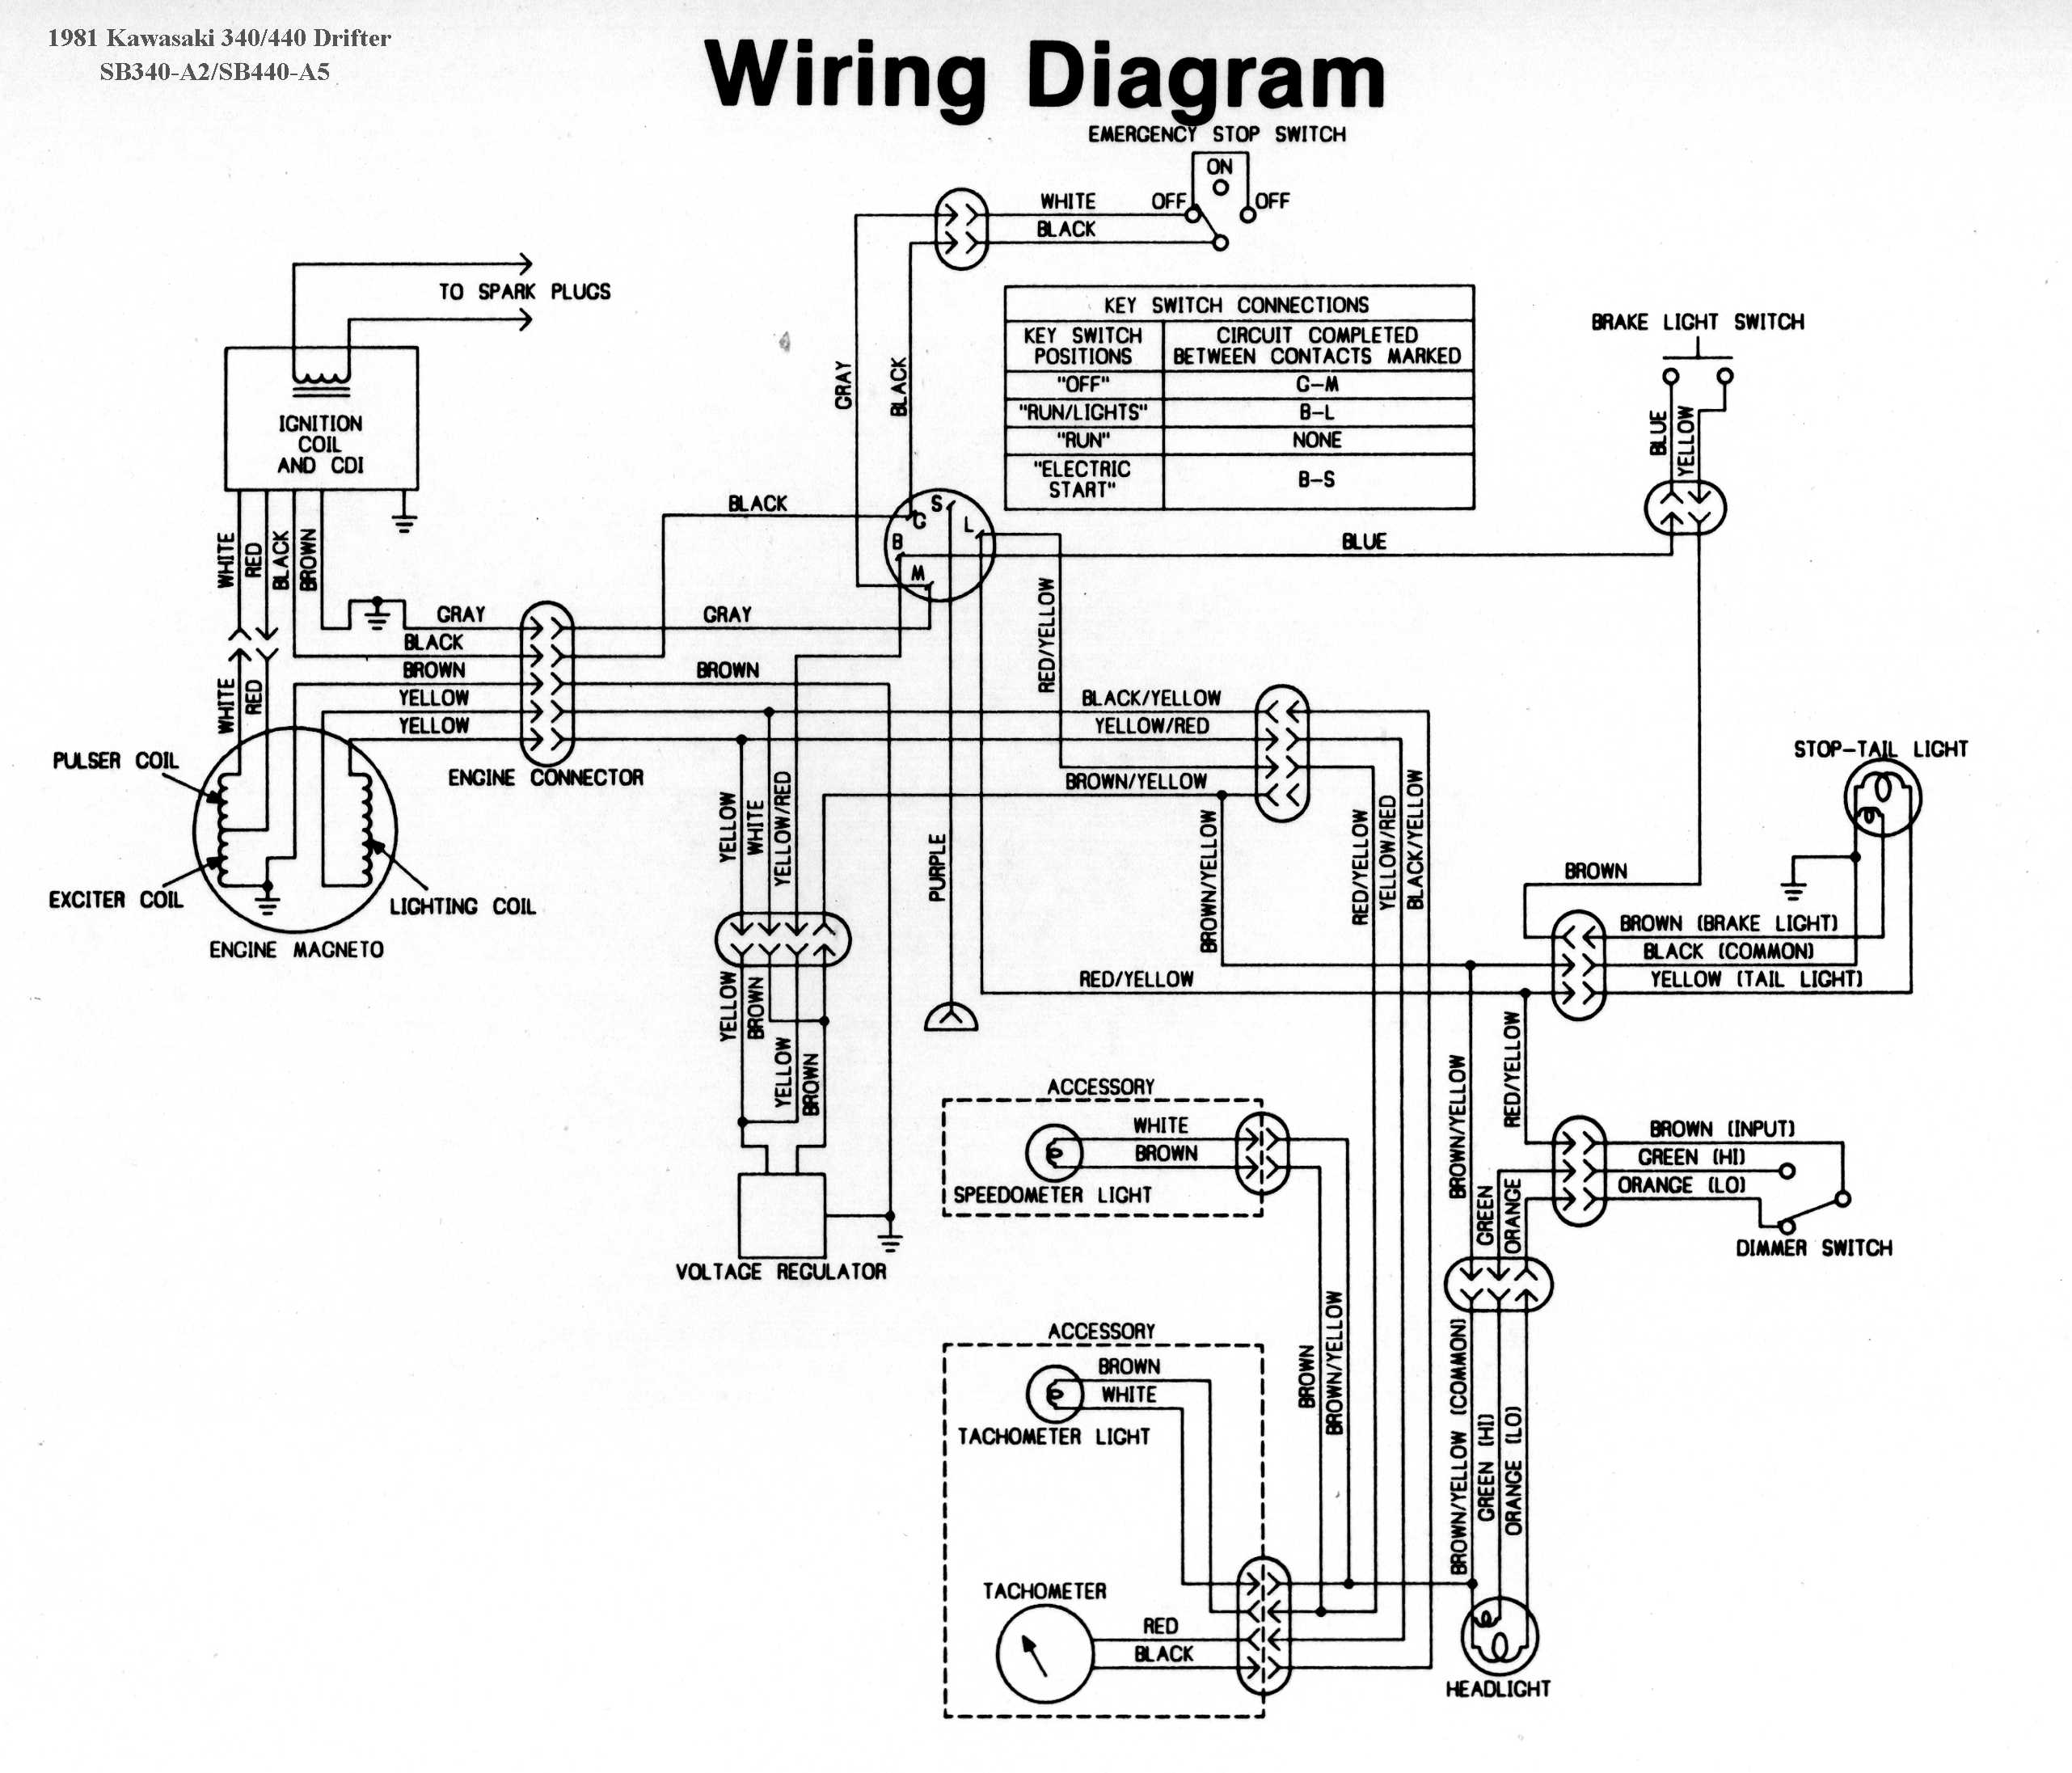 sb340a2 kawasaki 1980 kawasaki 440 ltd wiring diagram at bakdesigns.co